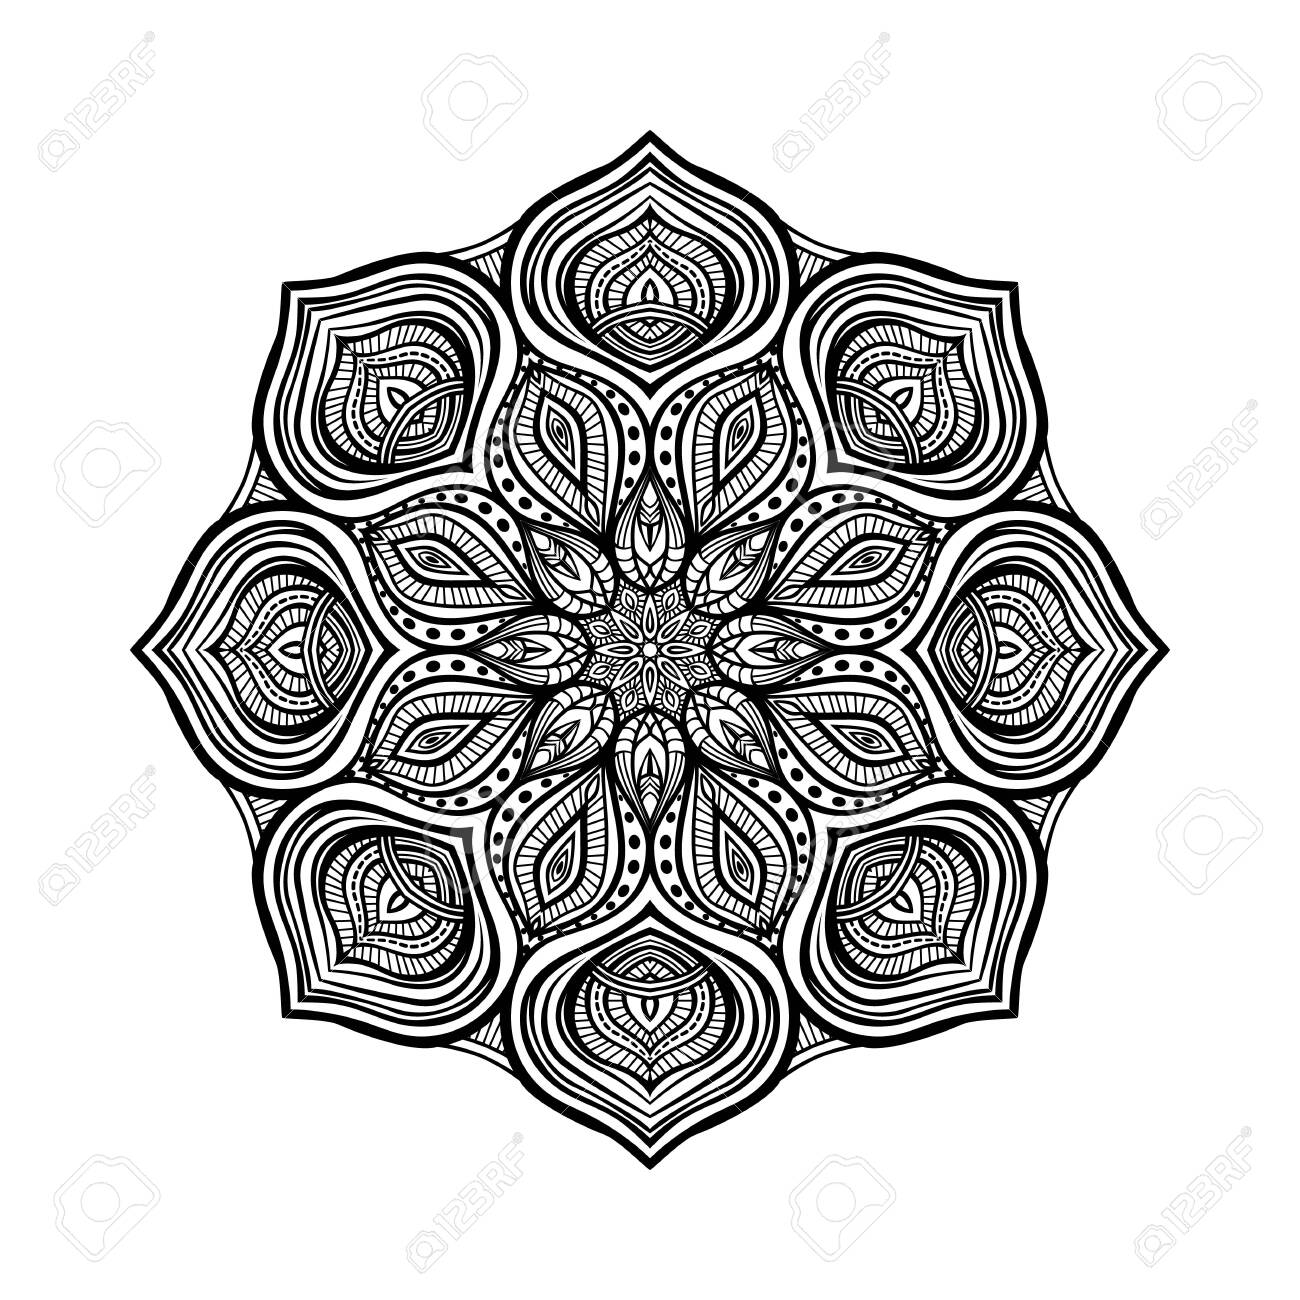 Black floral circular pattern on white background. Coloring book for adults. Vector illustration - 131138151